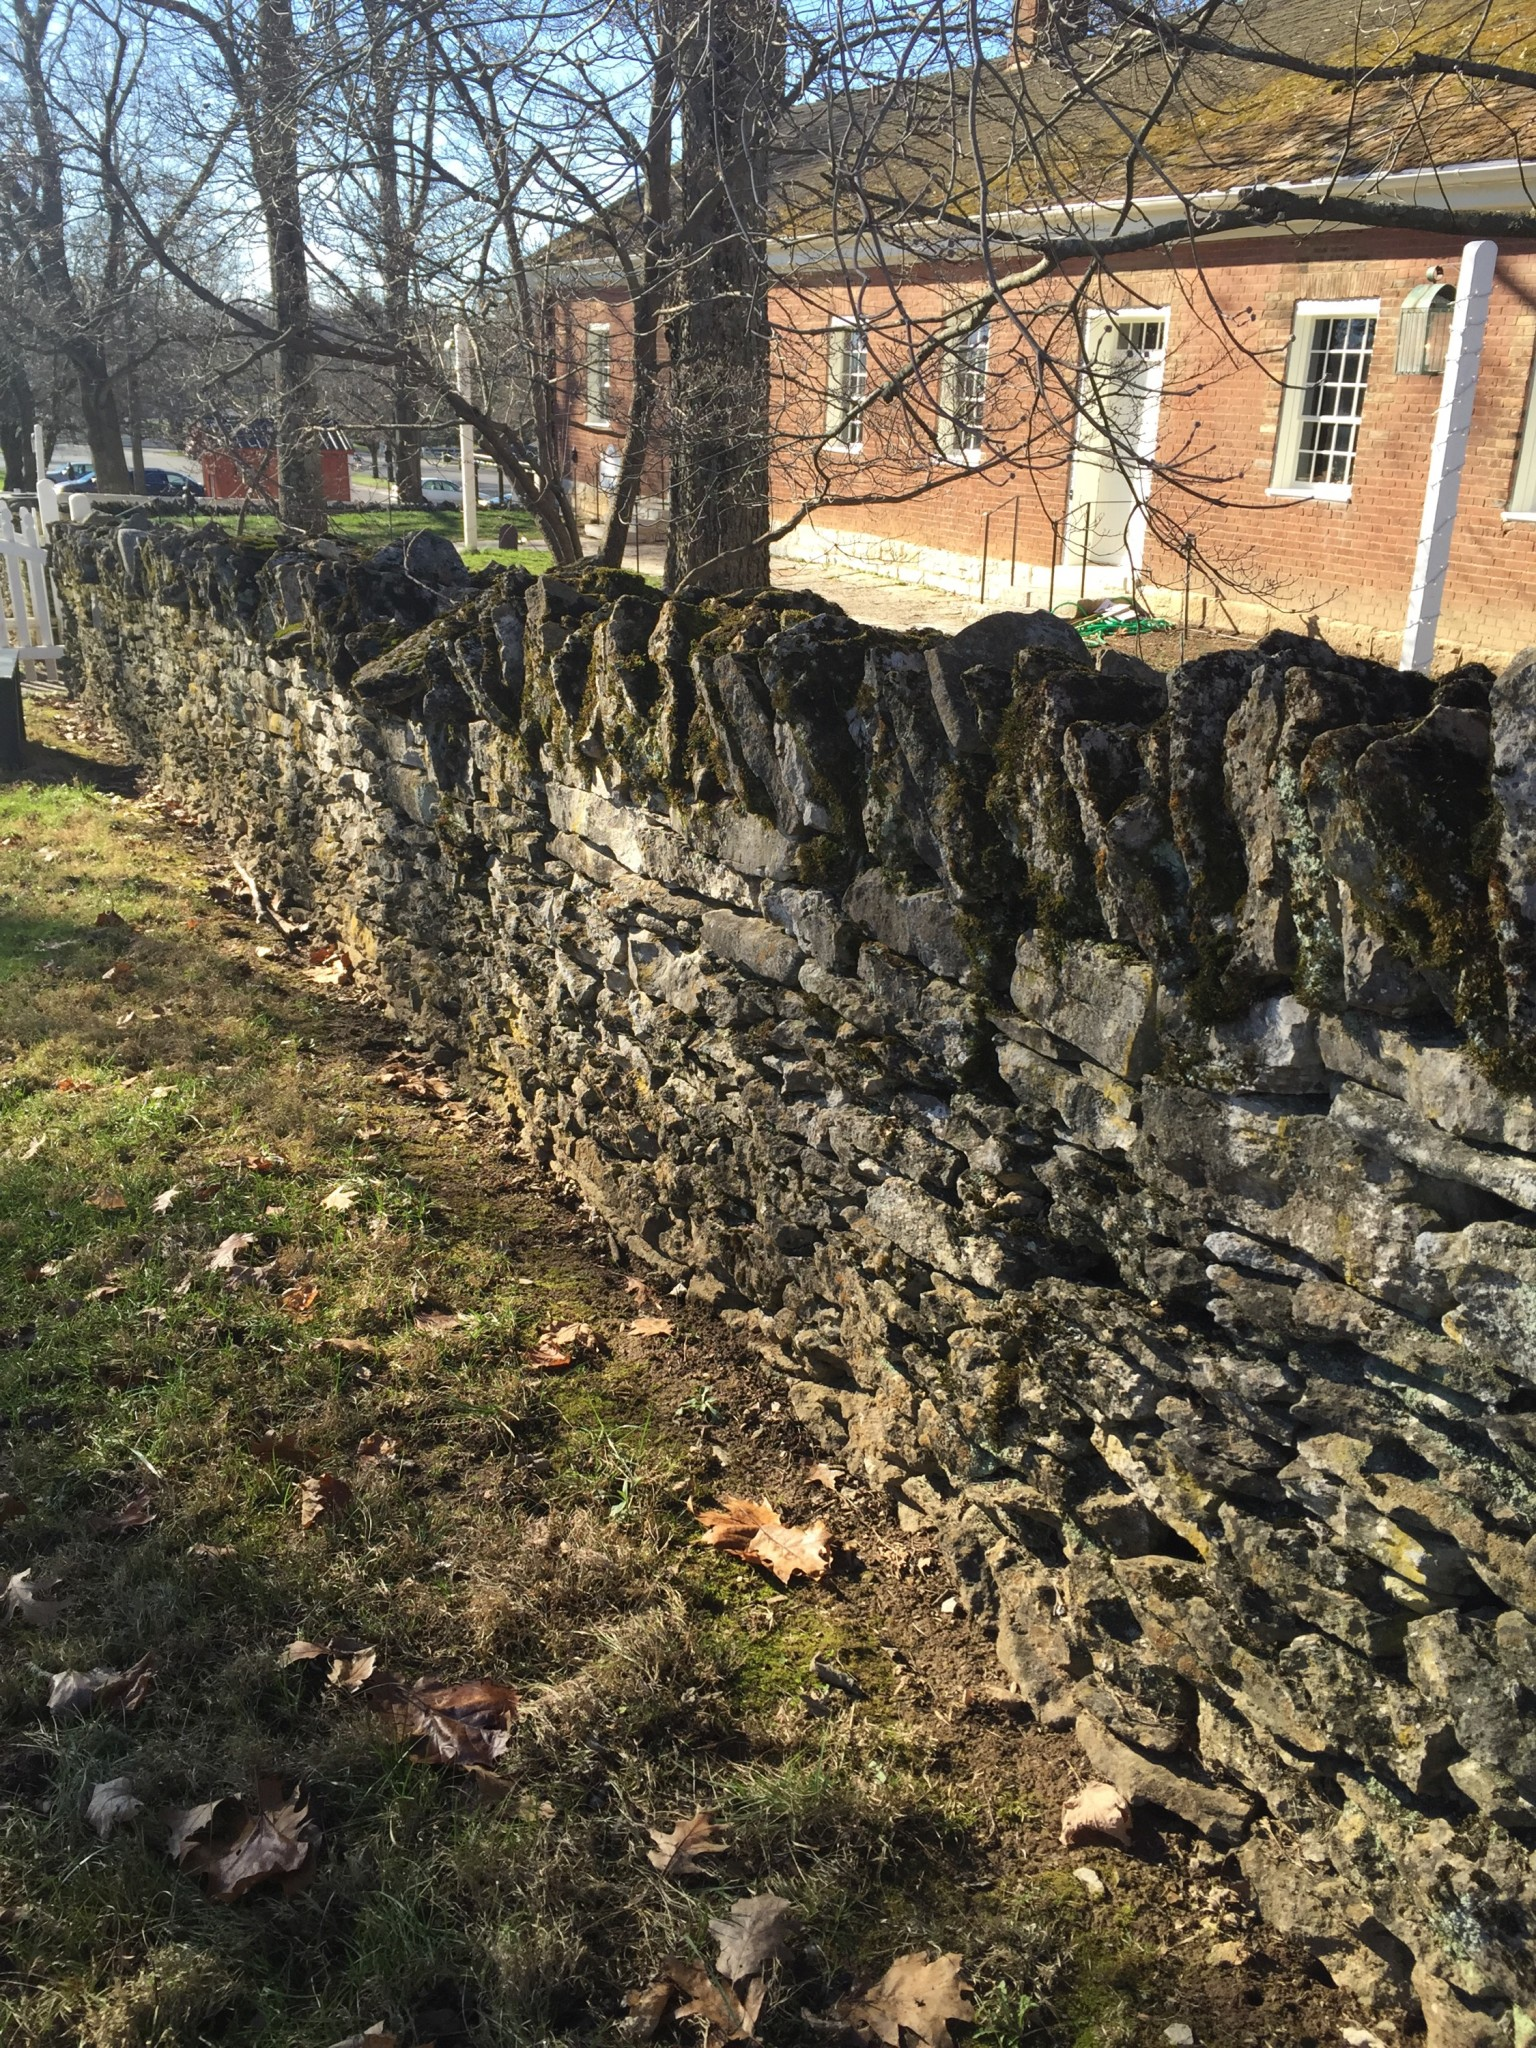 The Rock Wall at Shakertown Village